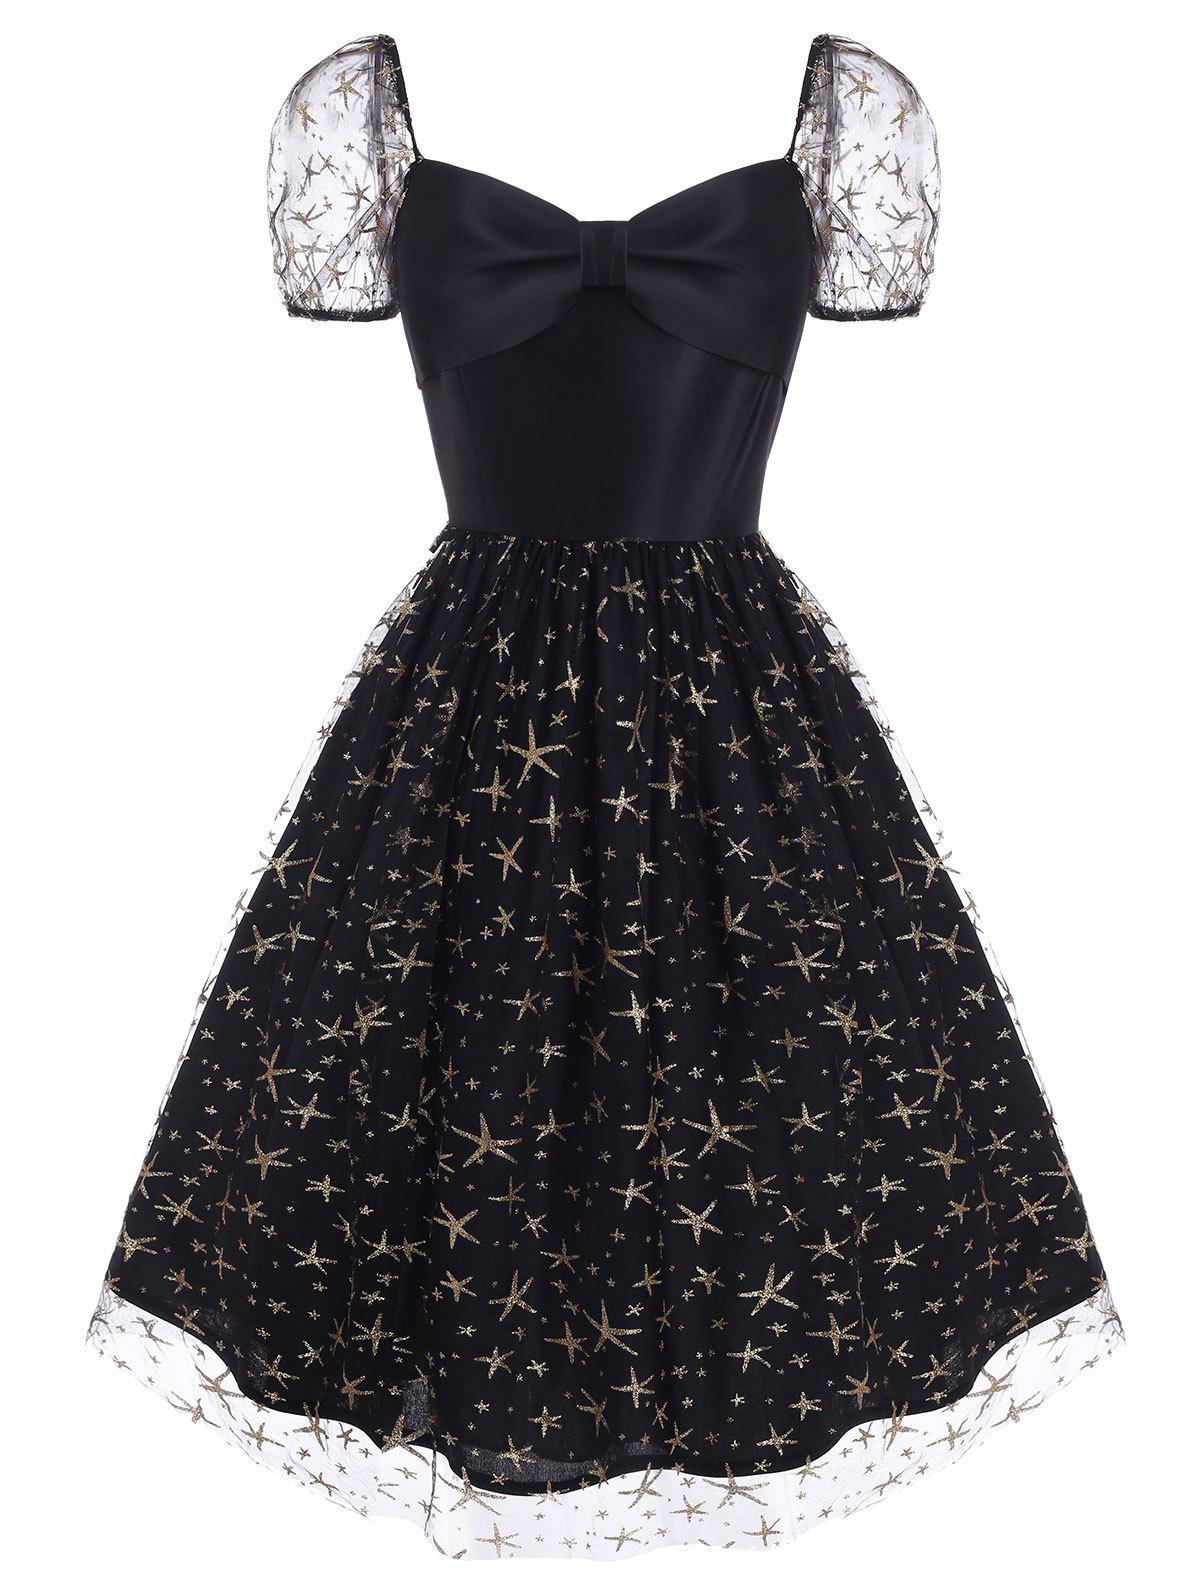 Sparkly Star Lace Insert Bowknot Sweetheart Dress - BLACK M